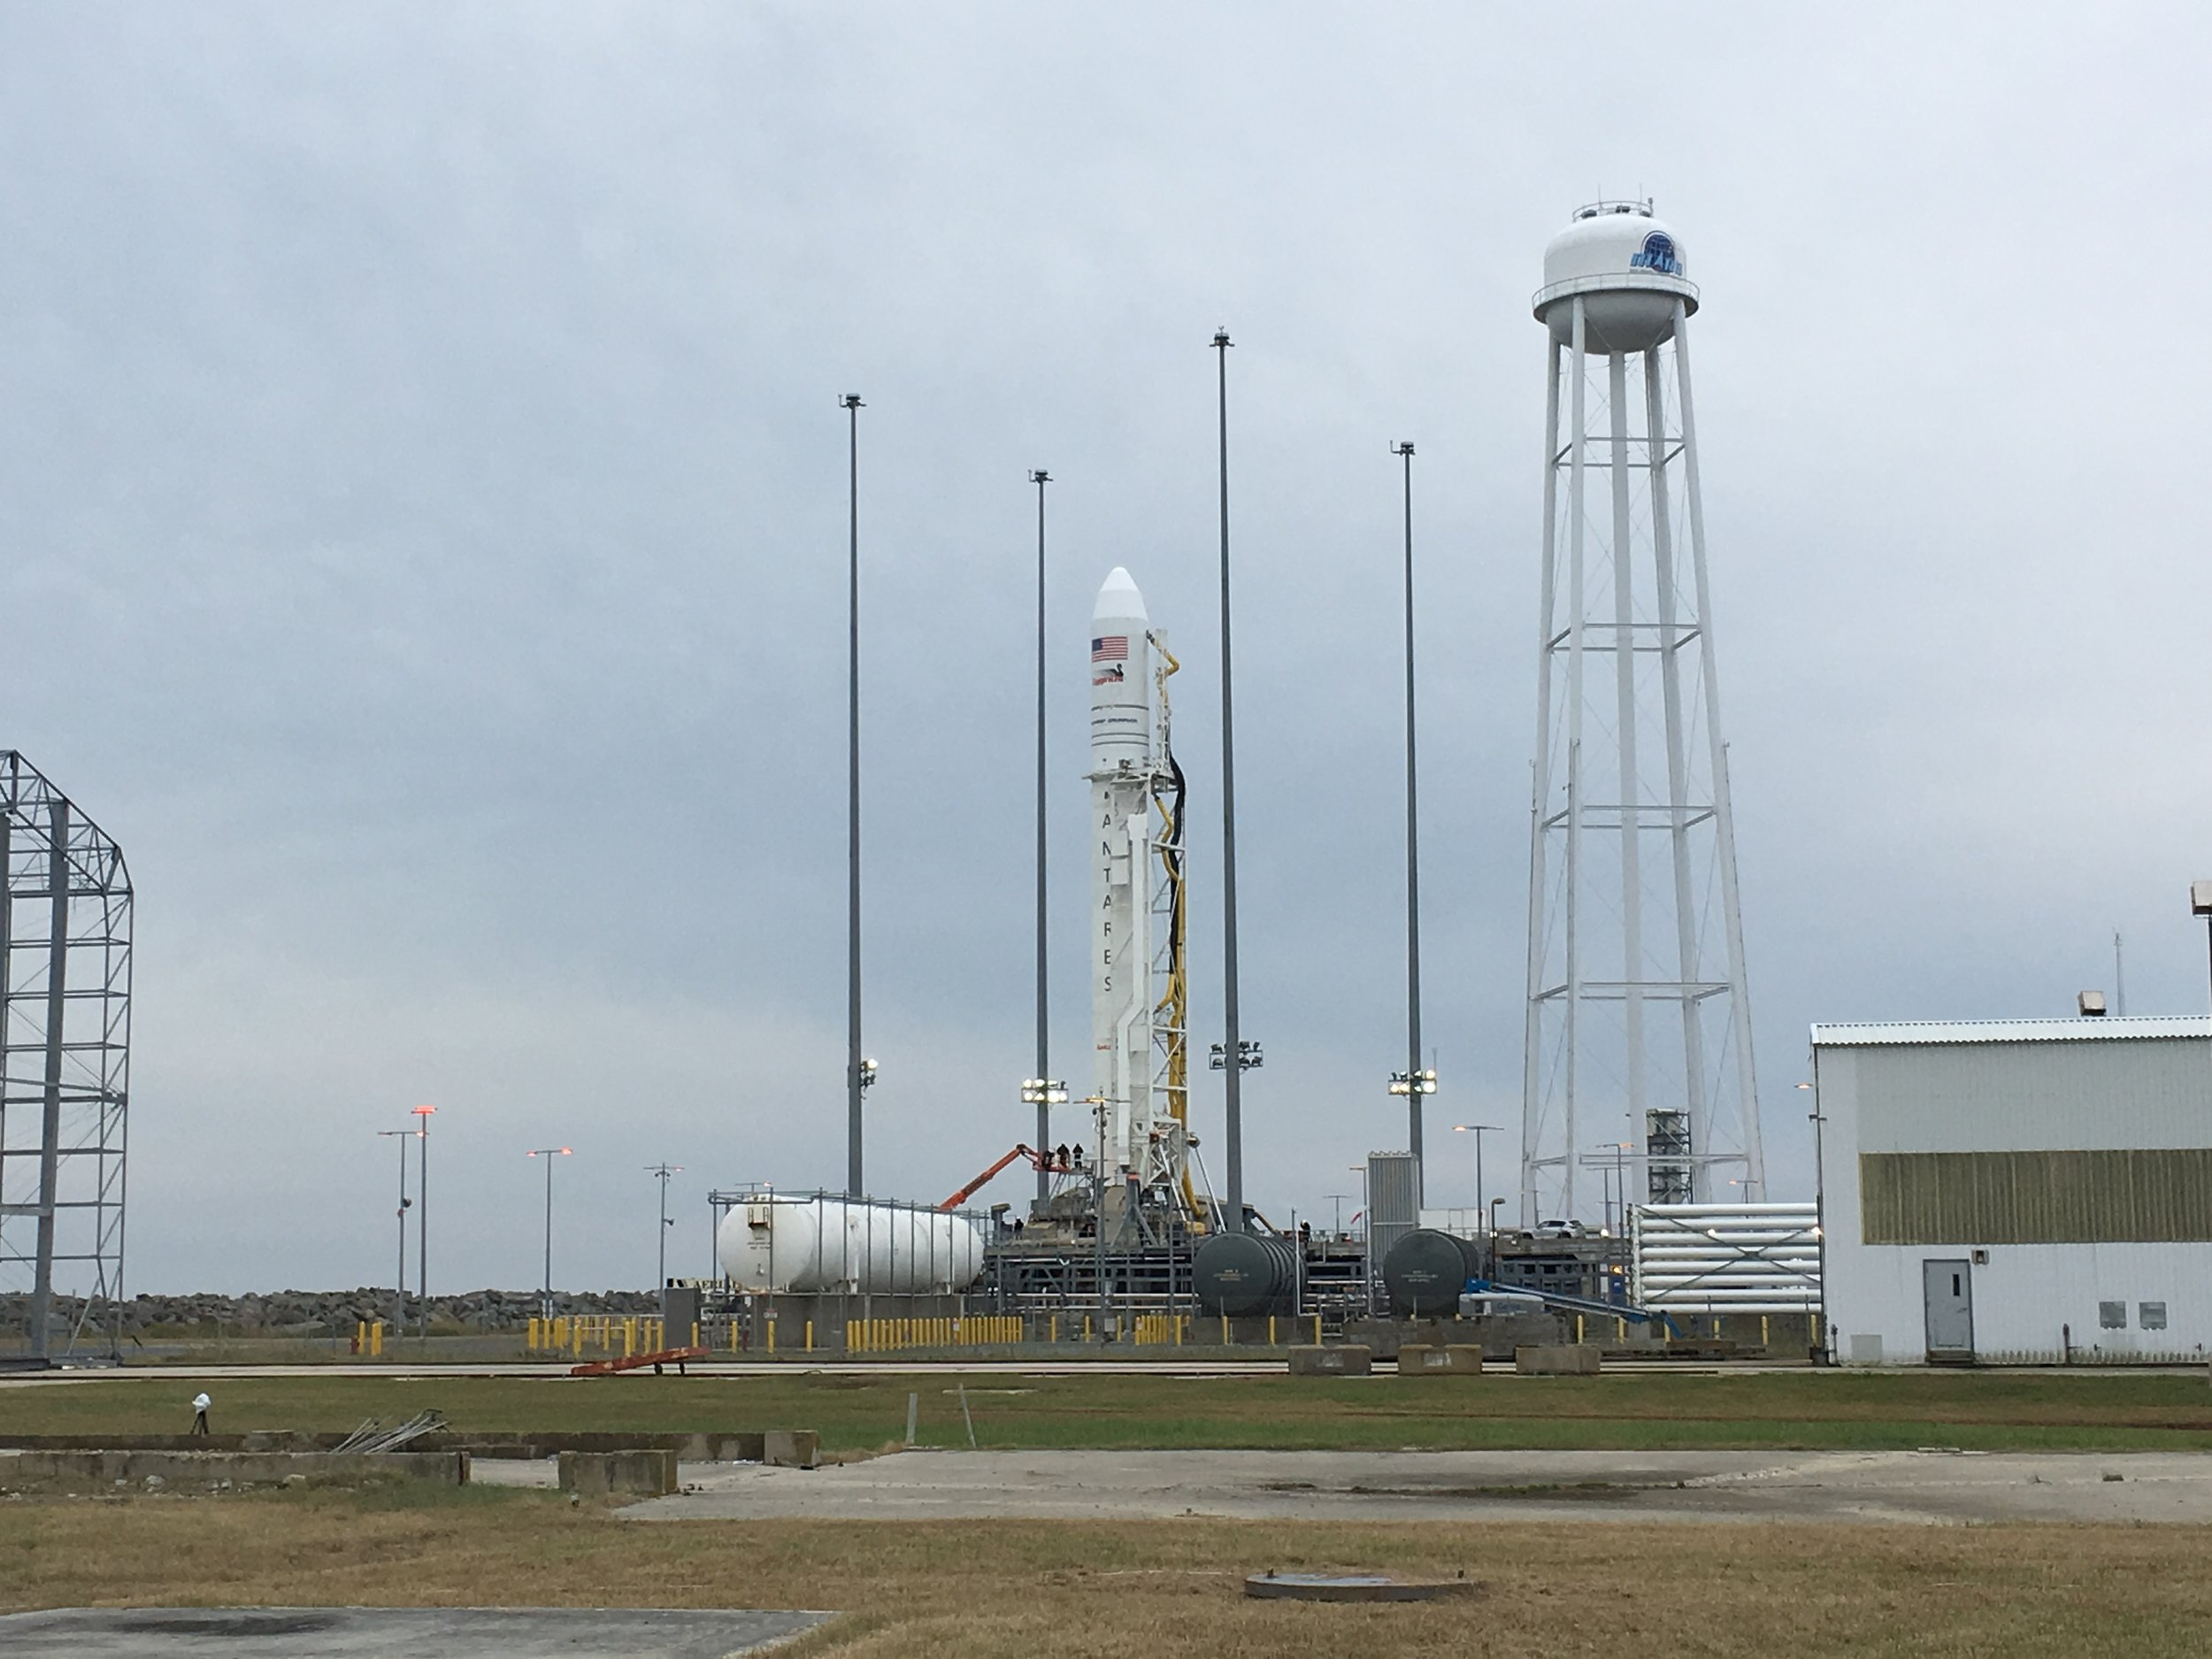 The NG-10 Antares being readied for departure from Pad 0-A at MARS.